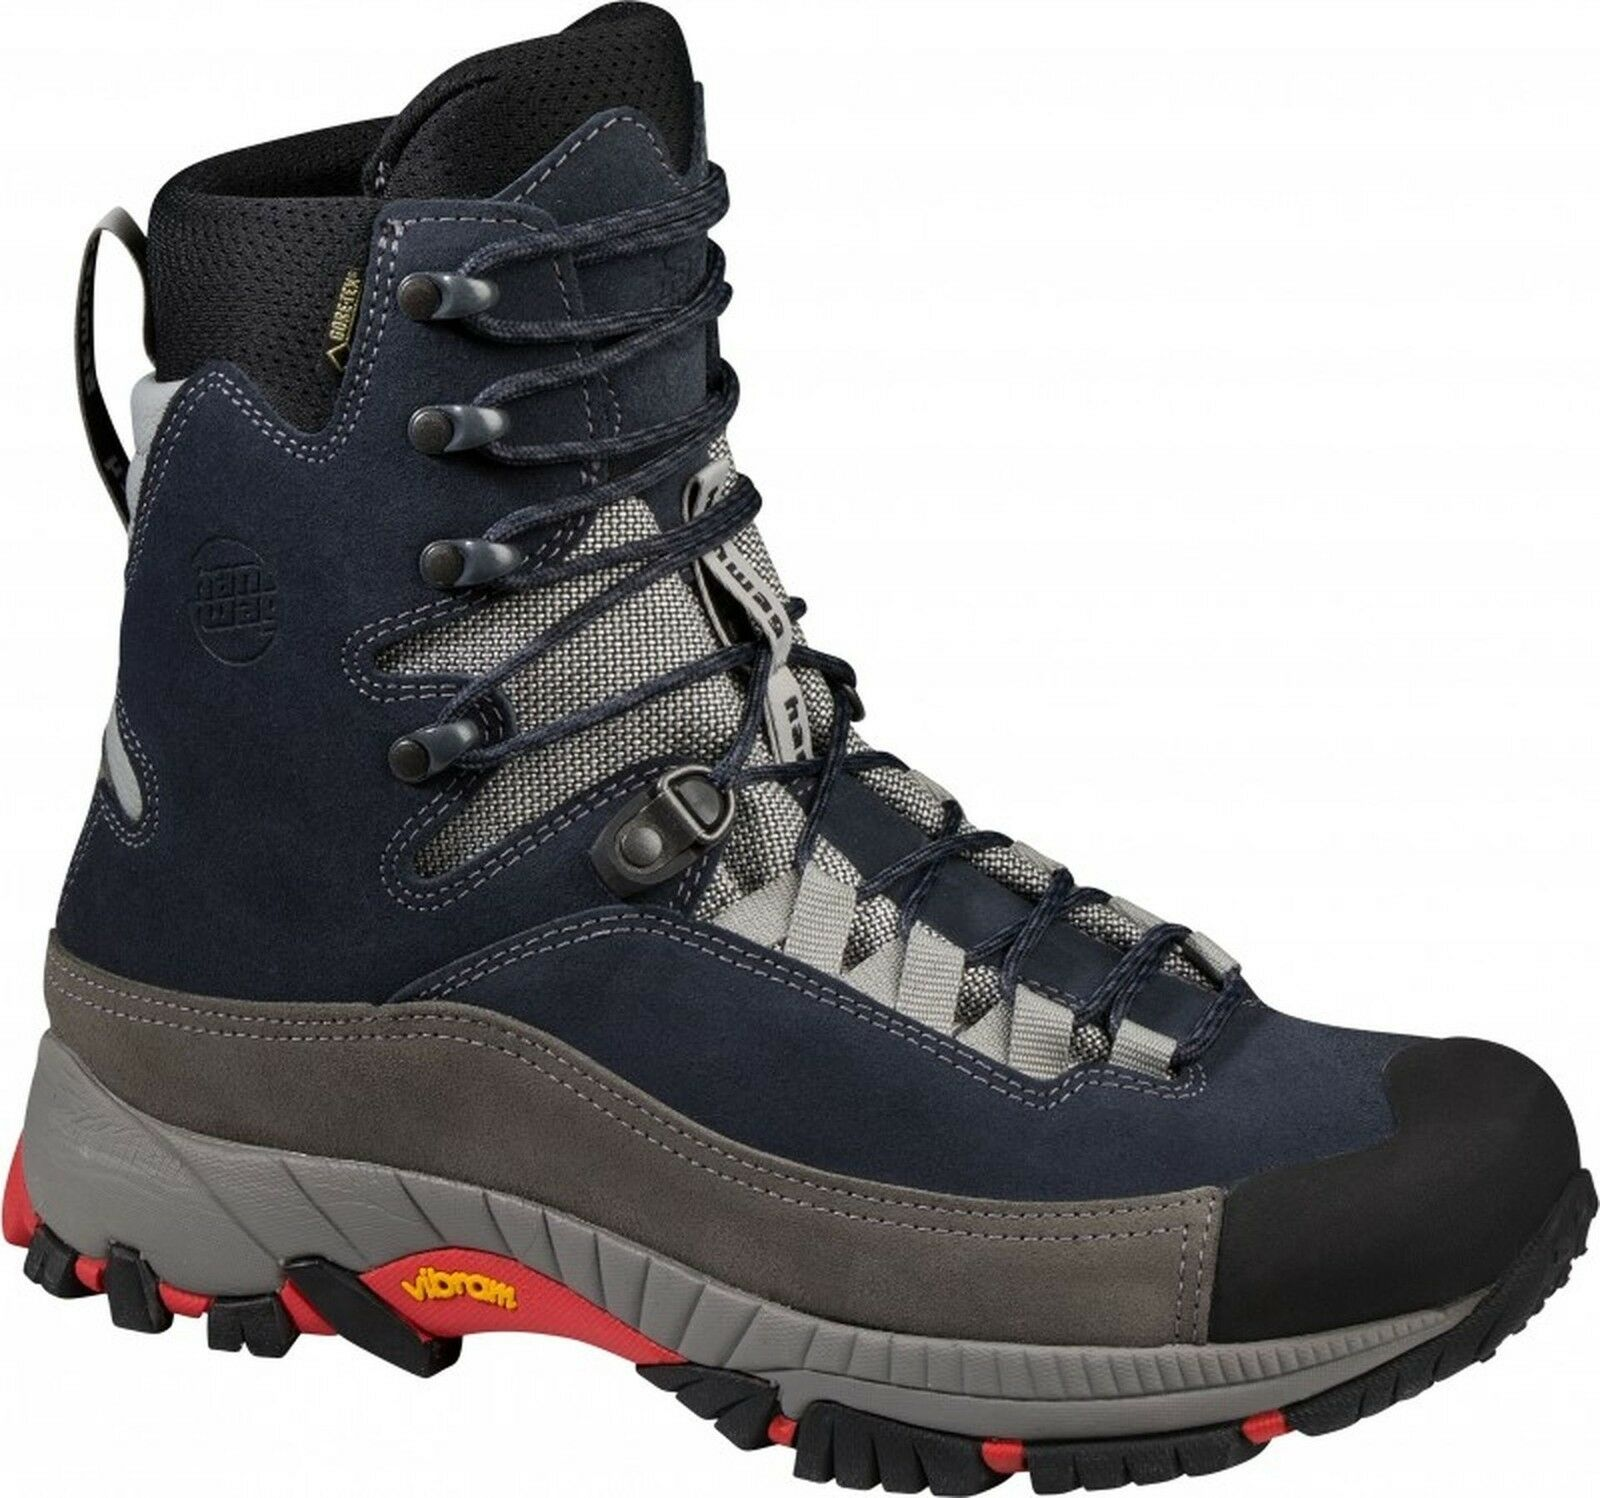 Hanwag Boots Paraglider Sky GTX Size 6 - 39,5 Navy bluee